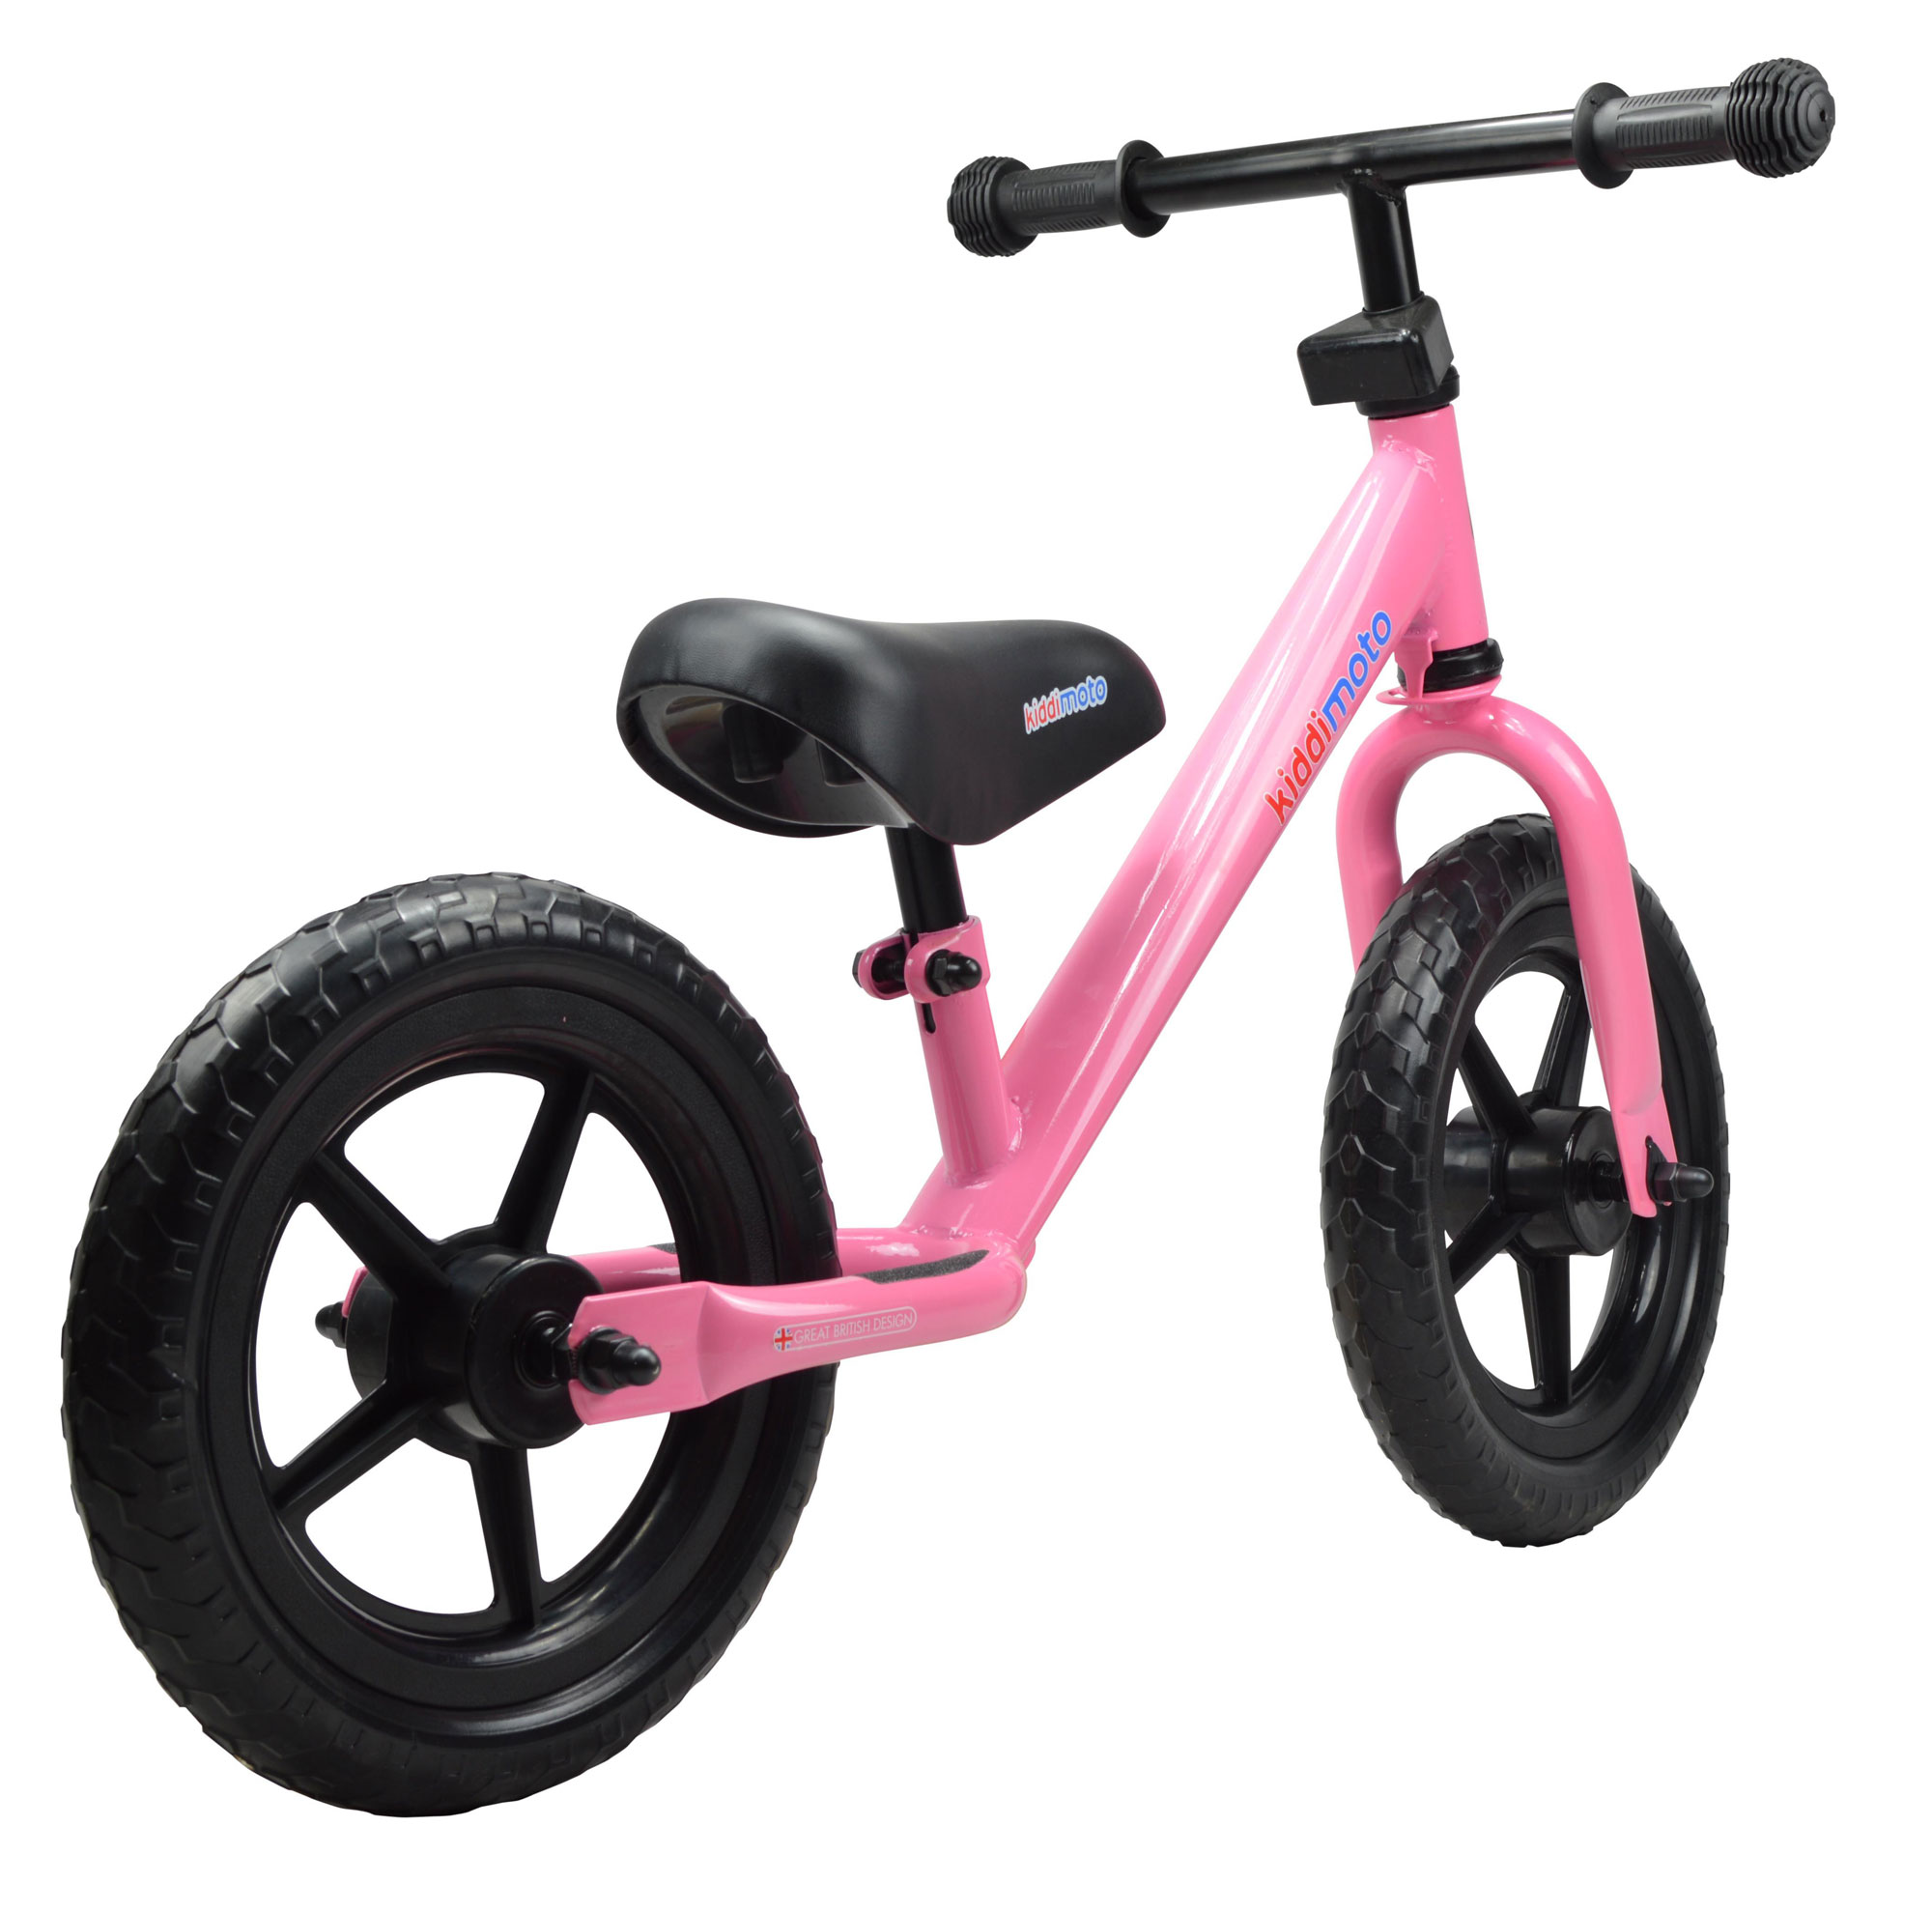 "kiddimoto Laufrad Super Junior SJ1 Metall verstellbar 12"" pink Bild 3"